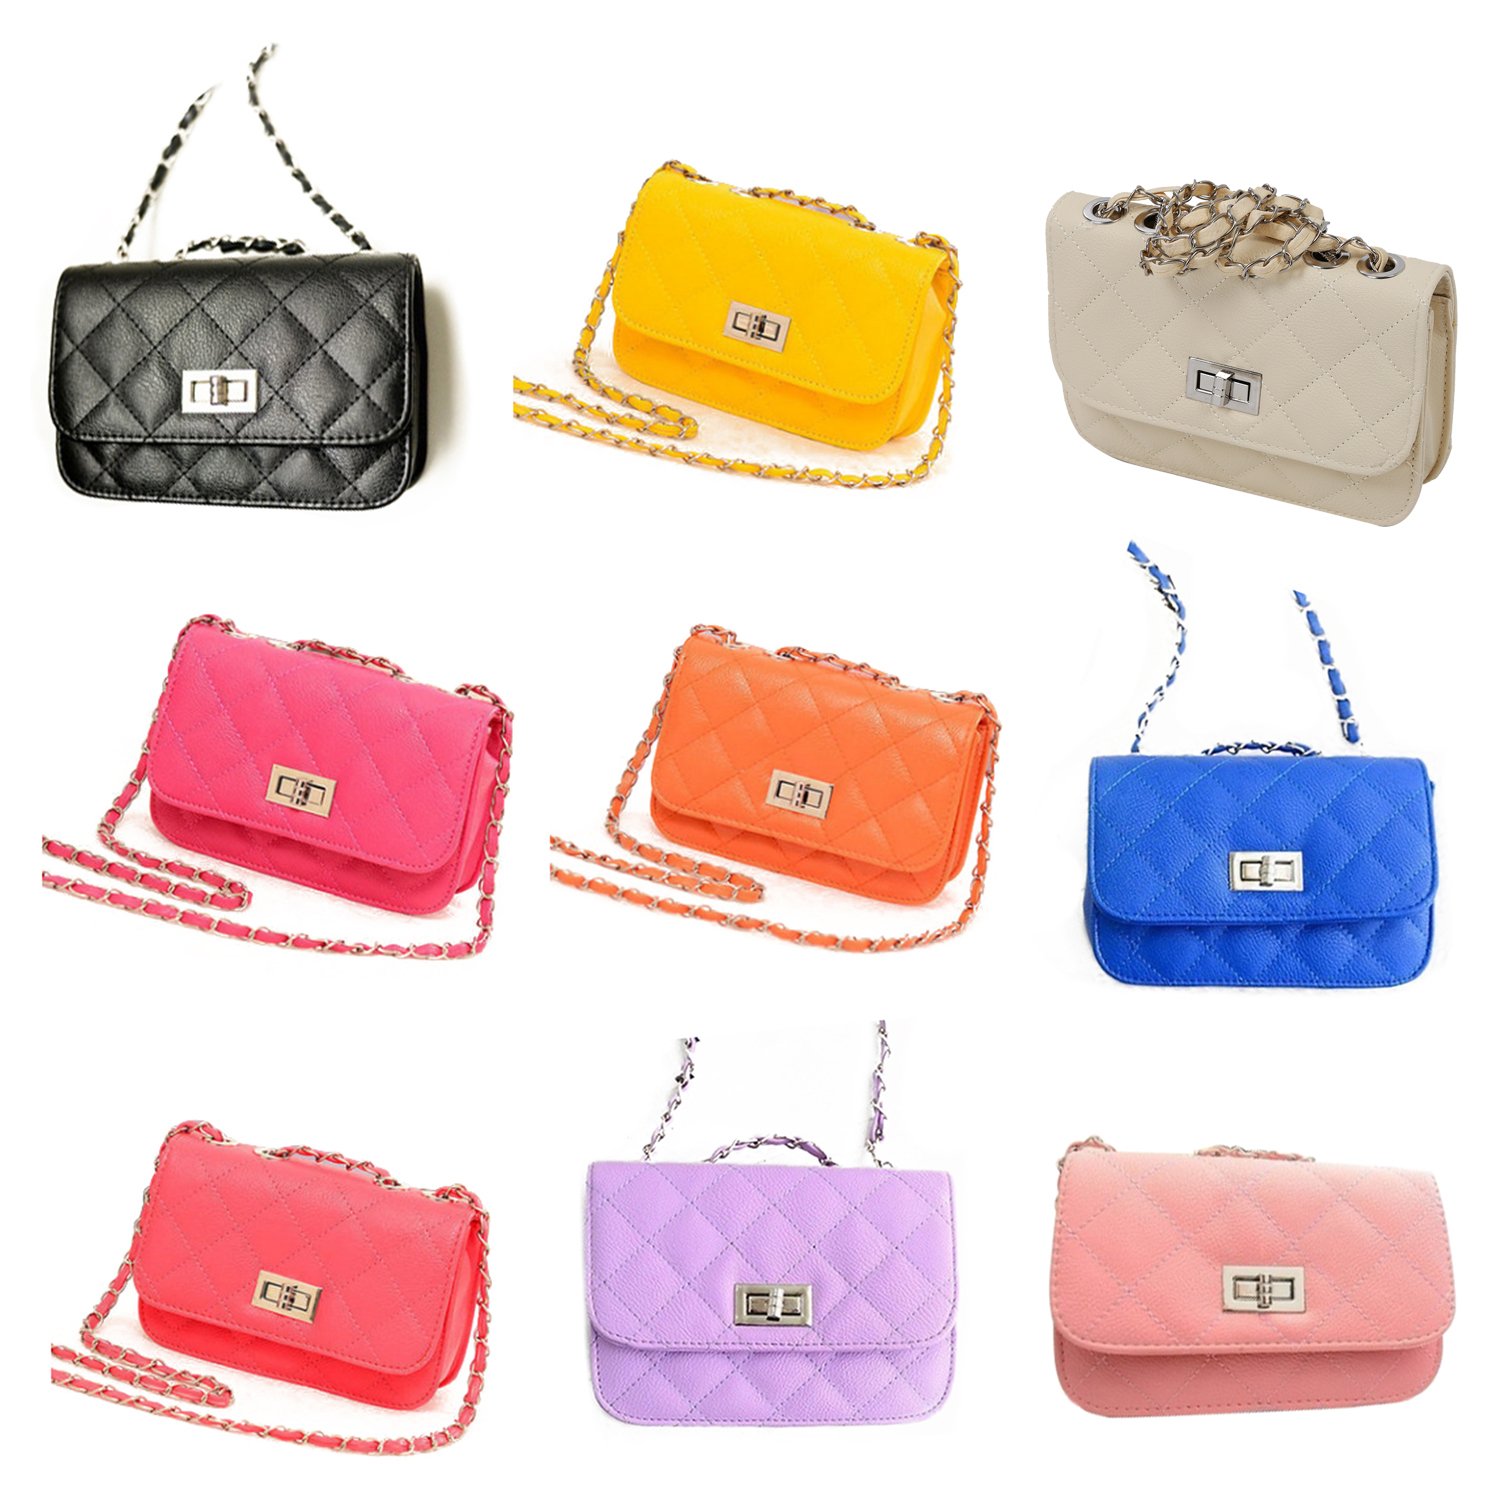 0f878d3cdaa9 Women s Leather Cute Mini Cross Body Chain Shoulder Bag D9O7. Net Weight   497g Material  synthetic Leather Colors  Black